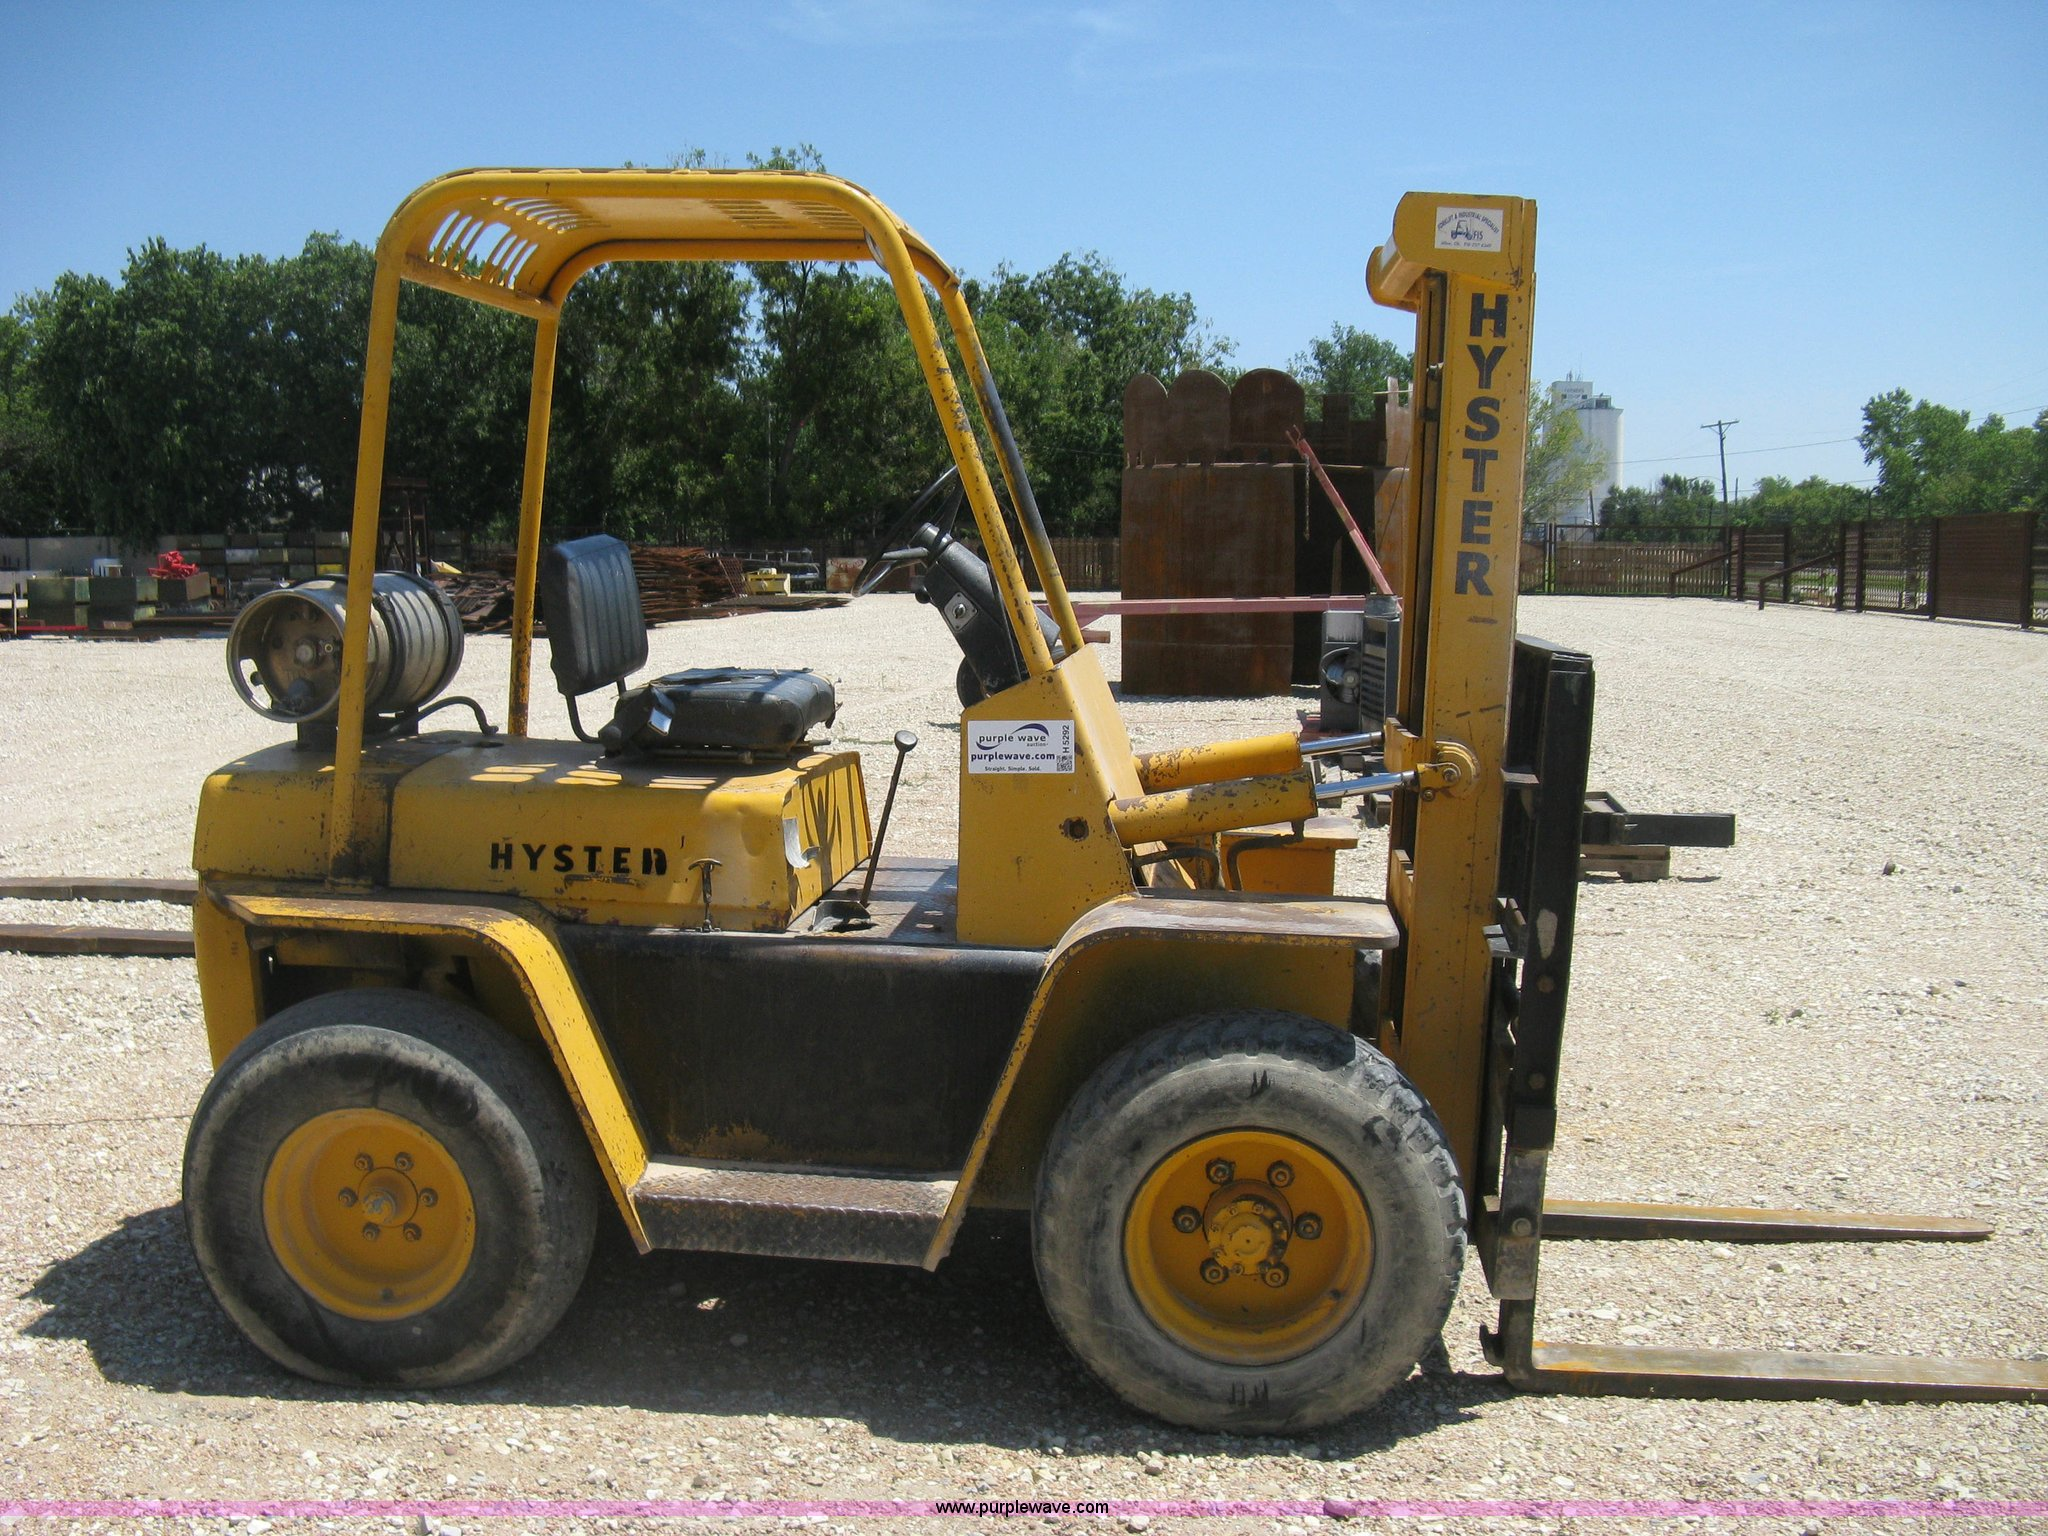 Hyster Rough Terrain Forklift Item H5292 Sold August 20 45 Wiring Diagram Full Size In New Window